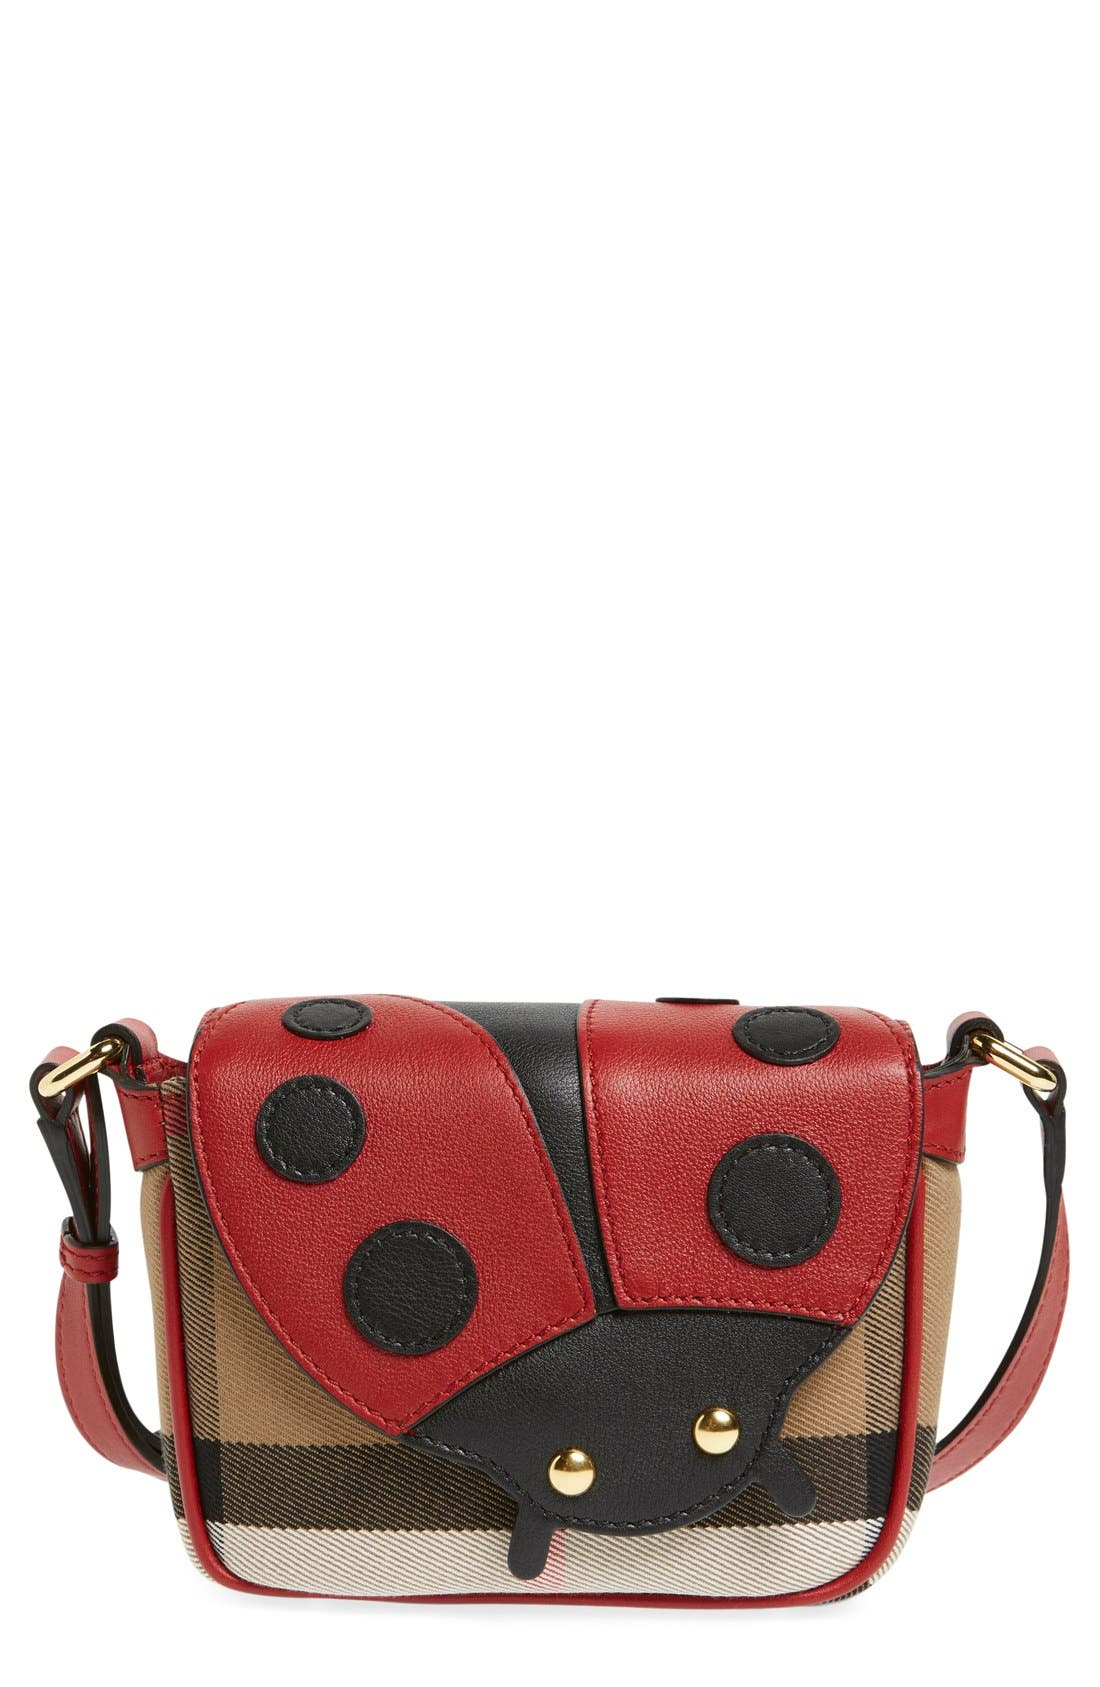 Main Image - Burberry 'Ladybird' Cotton & Leather Crossbody Bag (Girls)